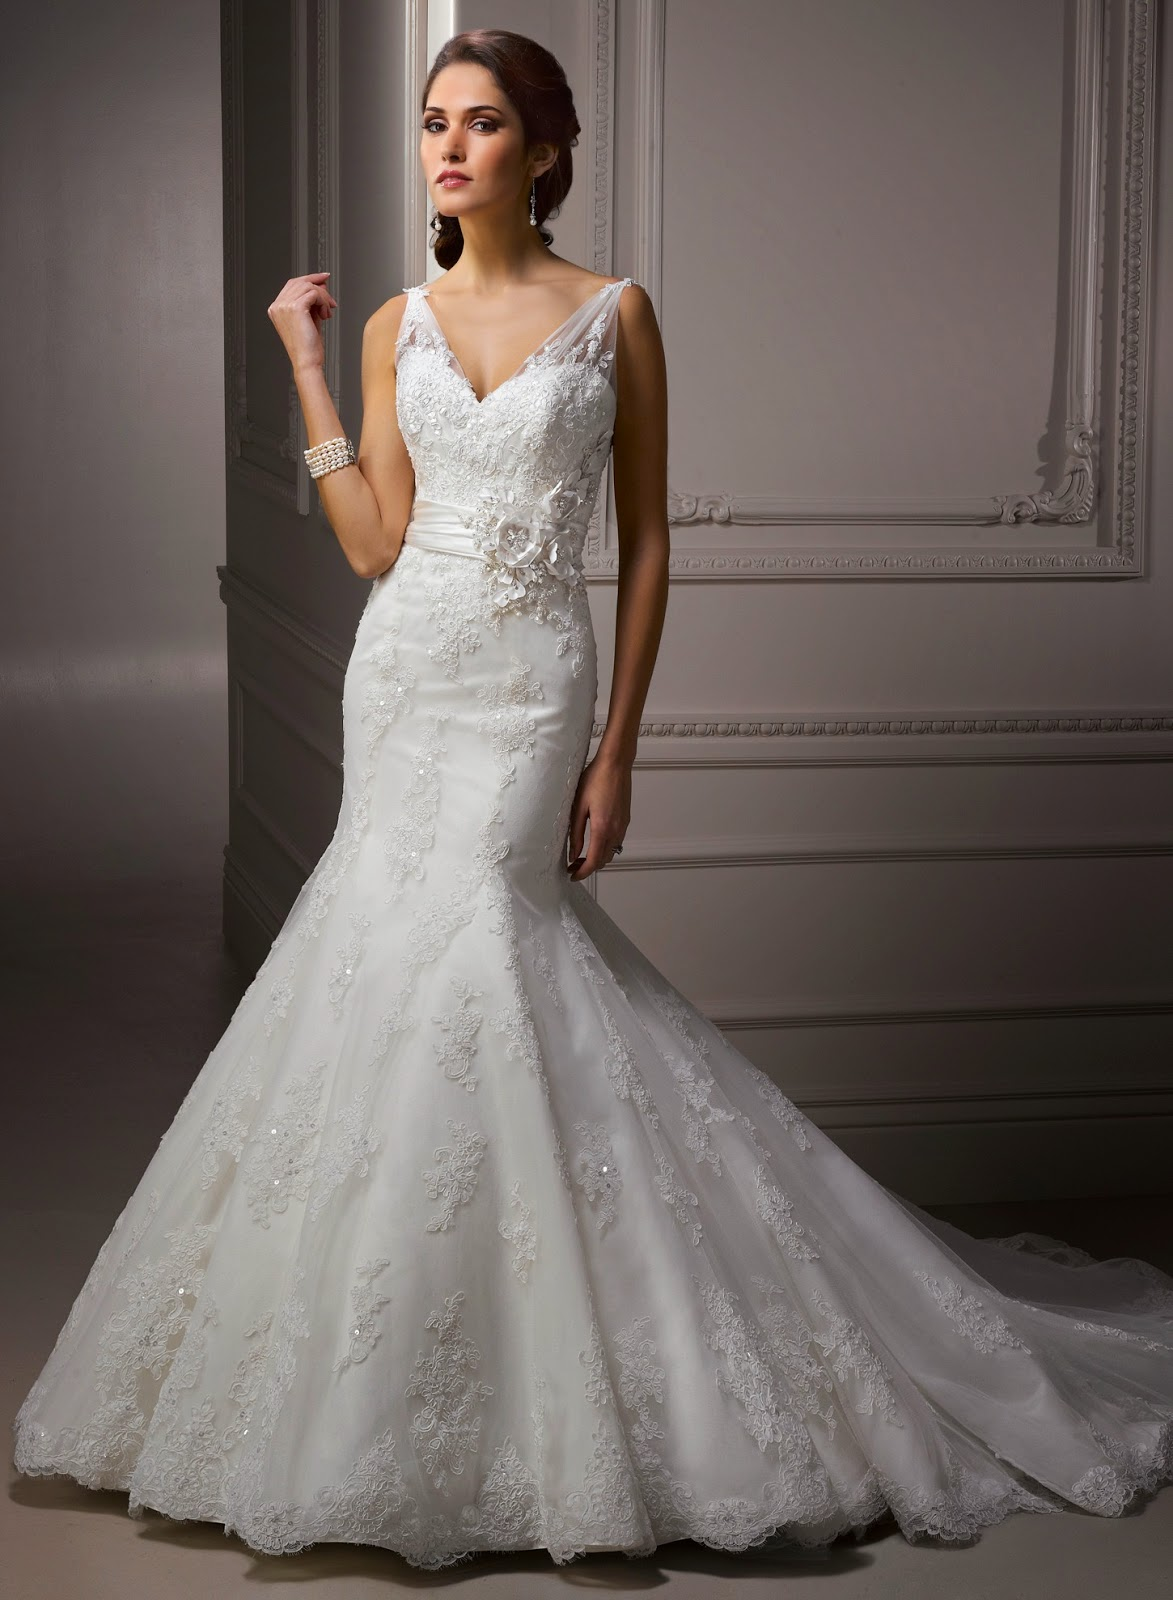 Old fashioned can u rent a wedding dress frieze princess for Where can i rent a wedding dress